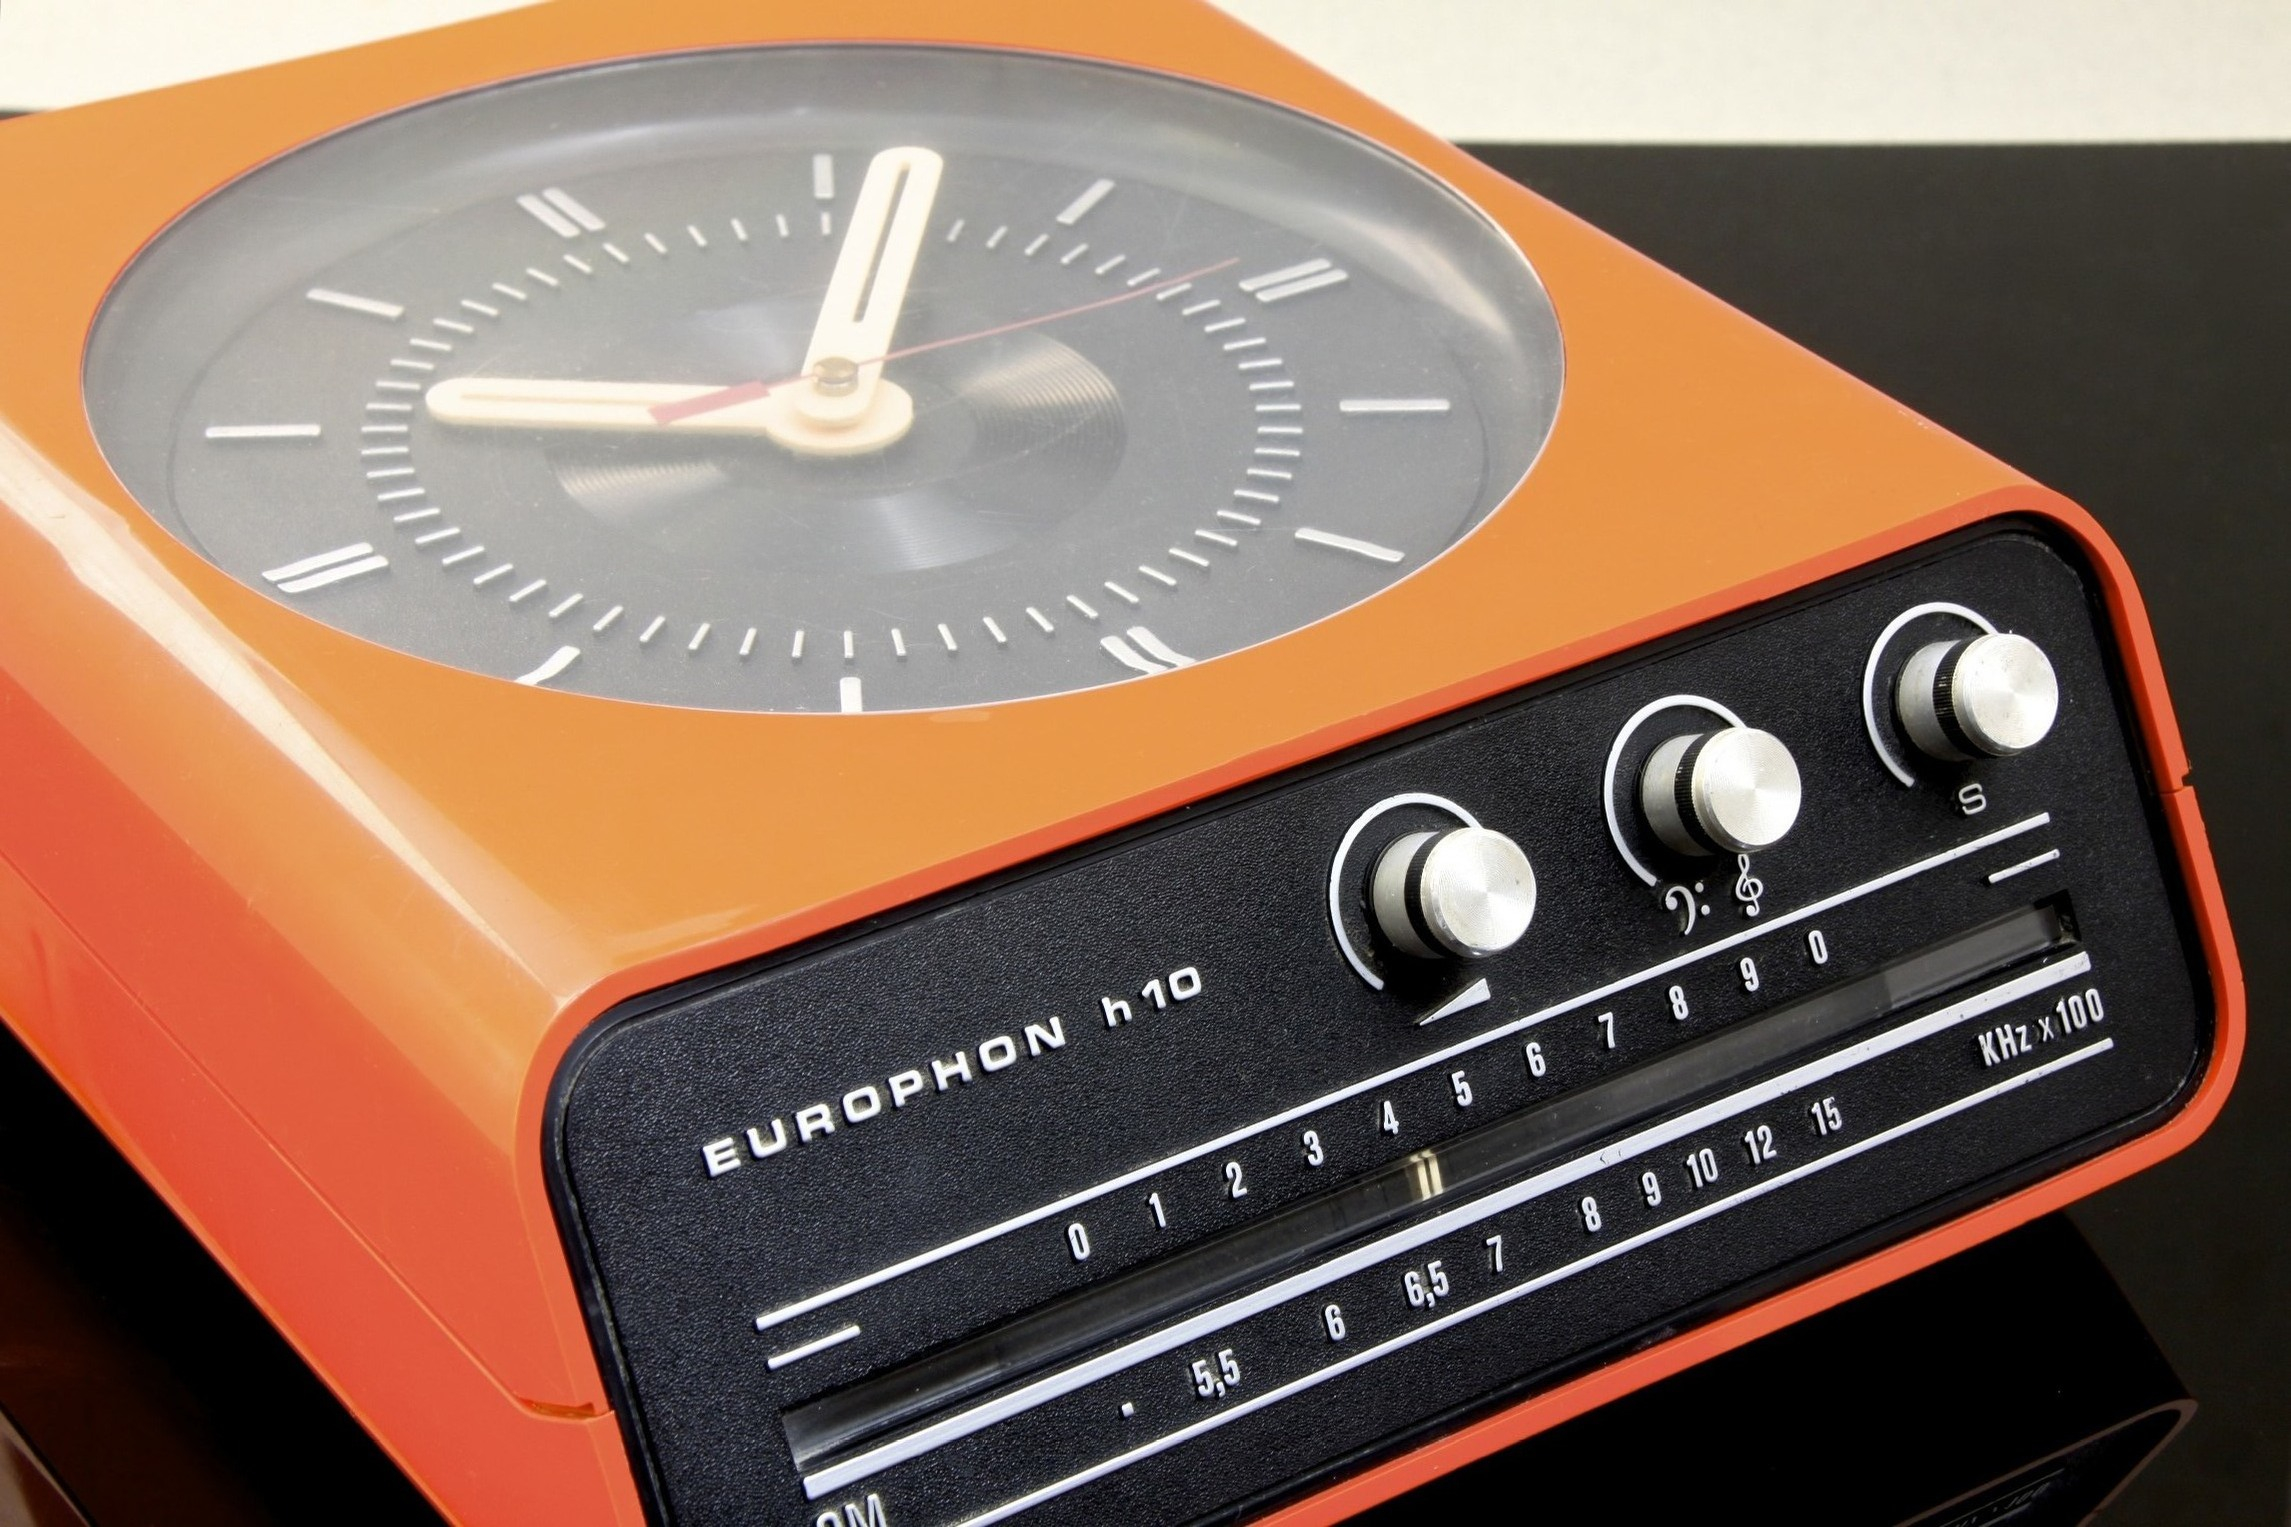 Space Age Orange Plastic Europhon H10 Wall Clock And Radio